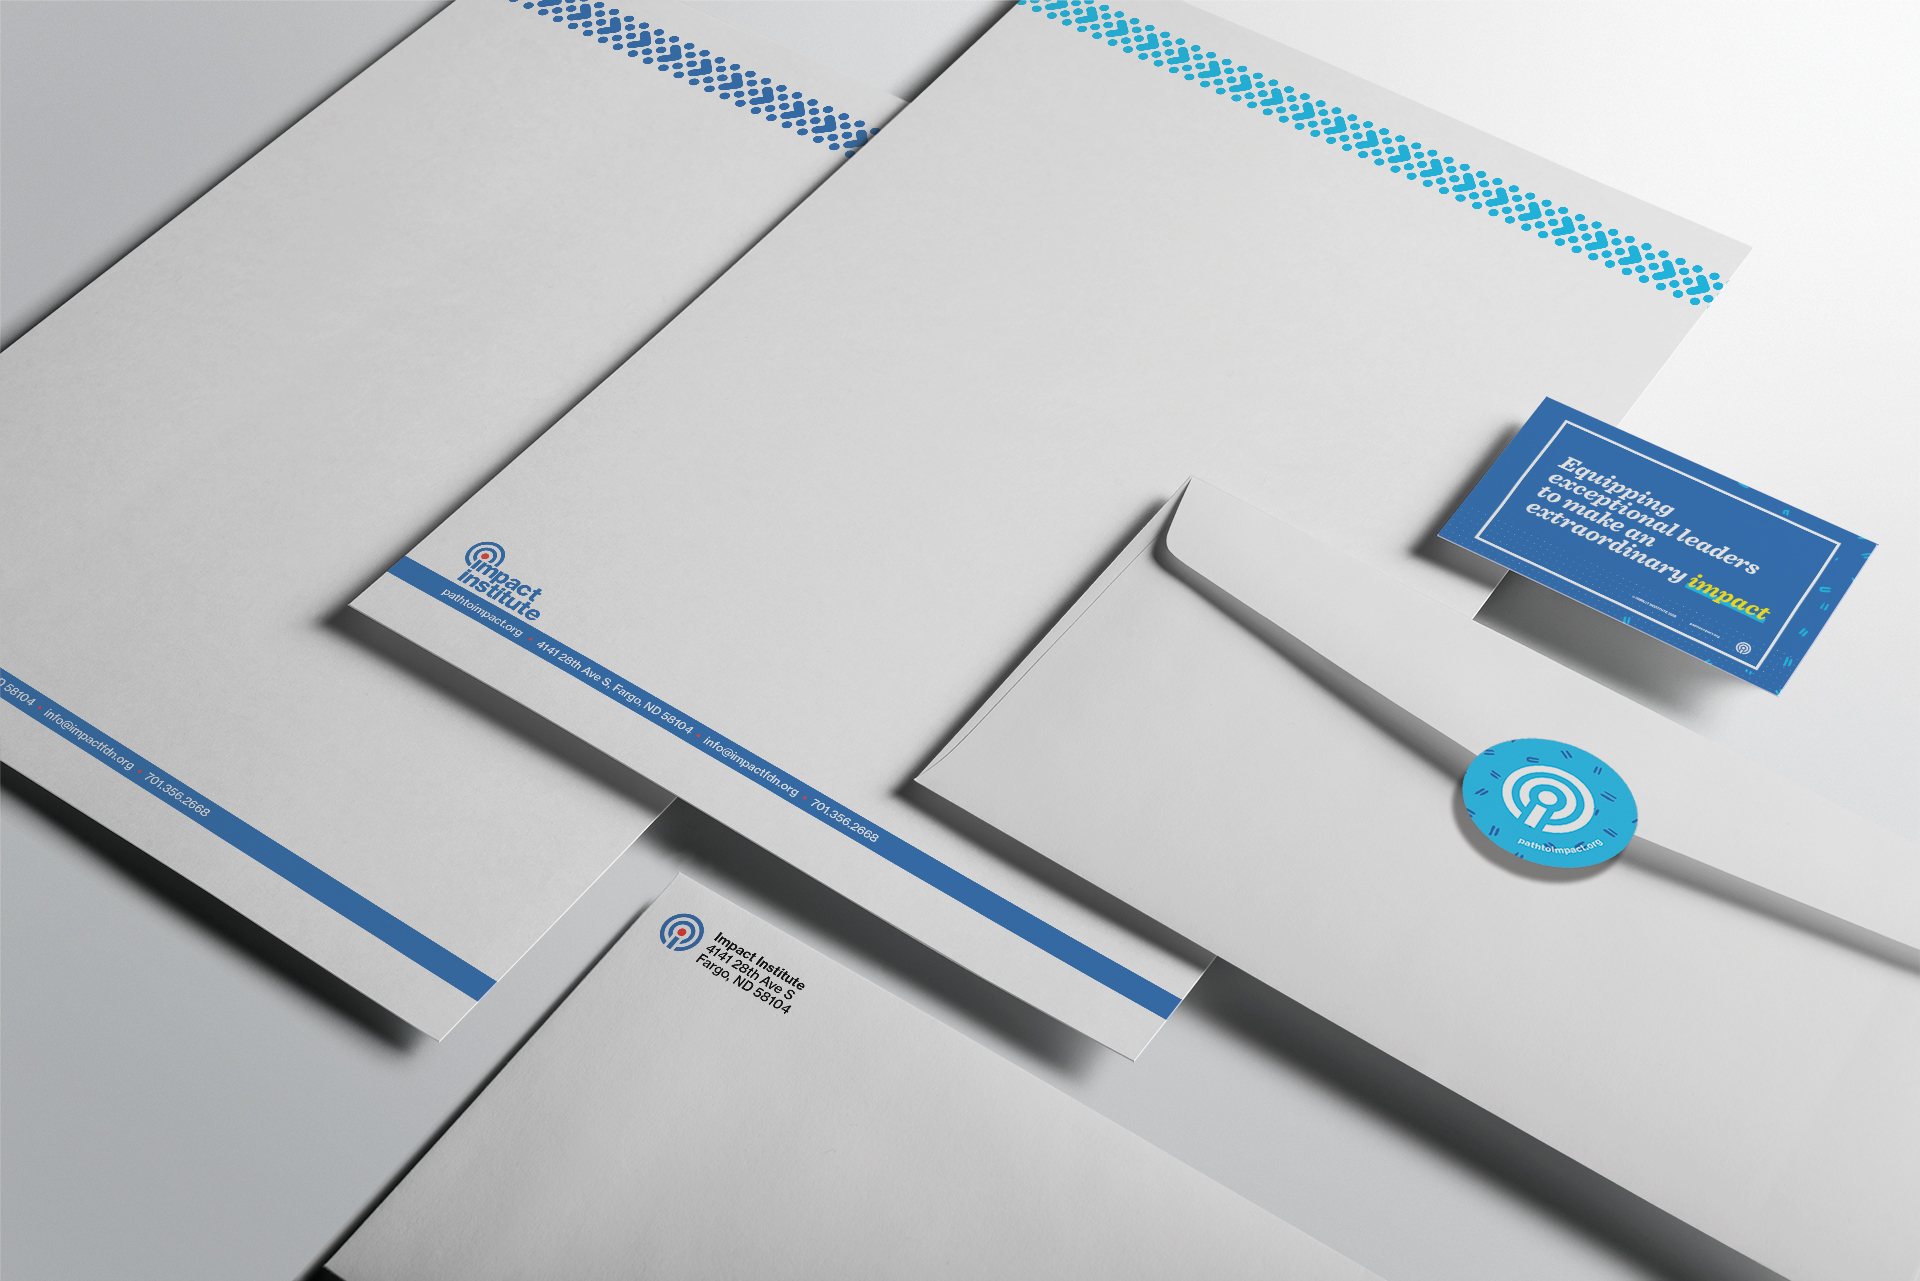 Isometric view of letterhead, envelopes, and business card for Impact Institute